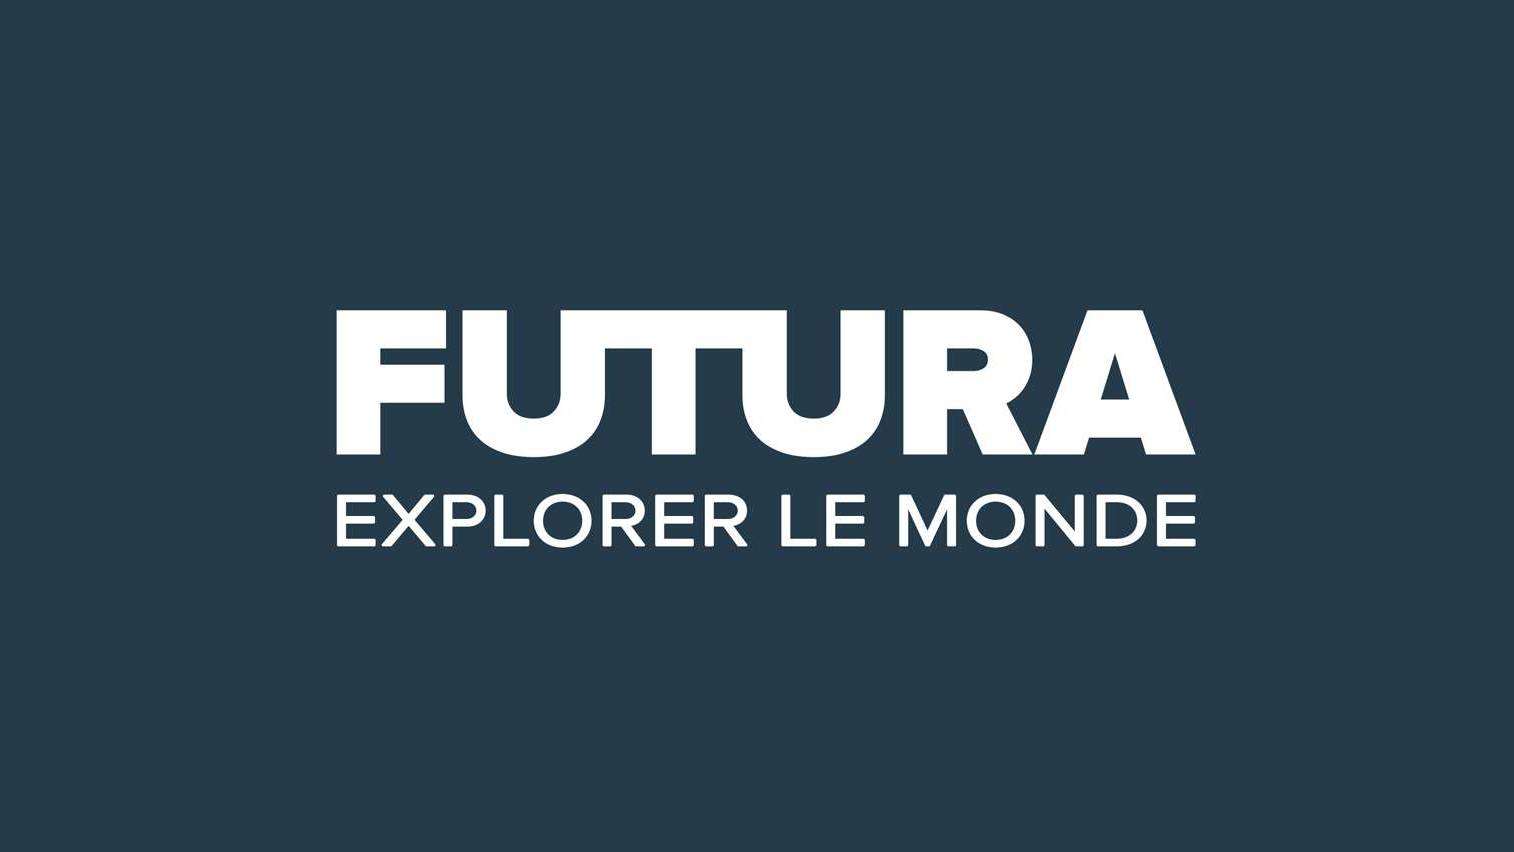 Futura Sciences, explorer le monde. Logo.